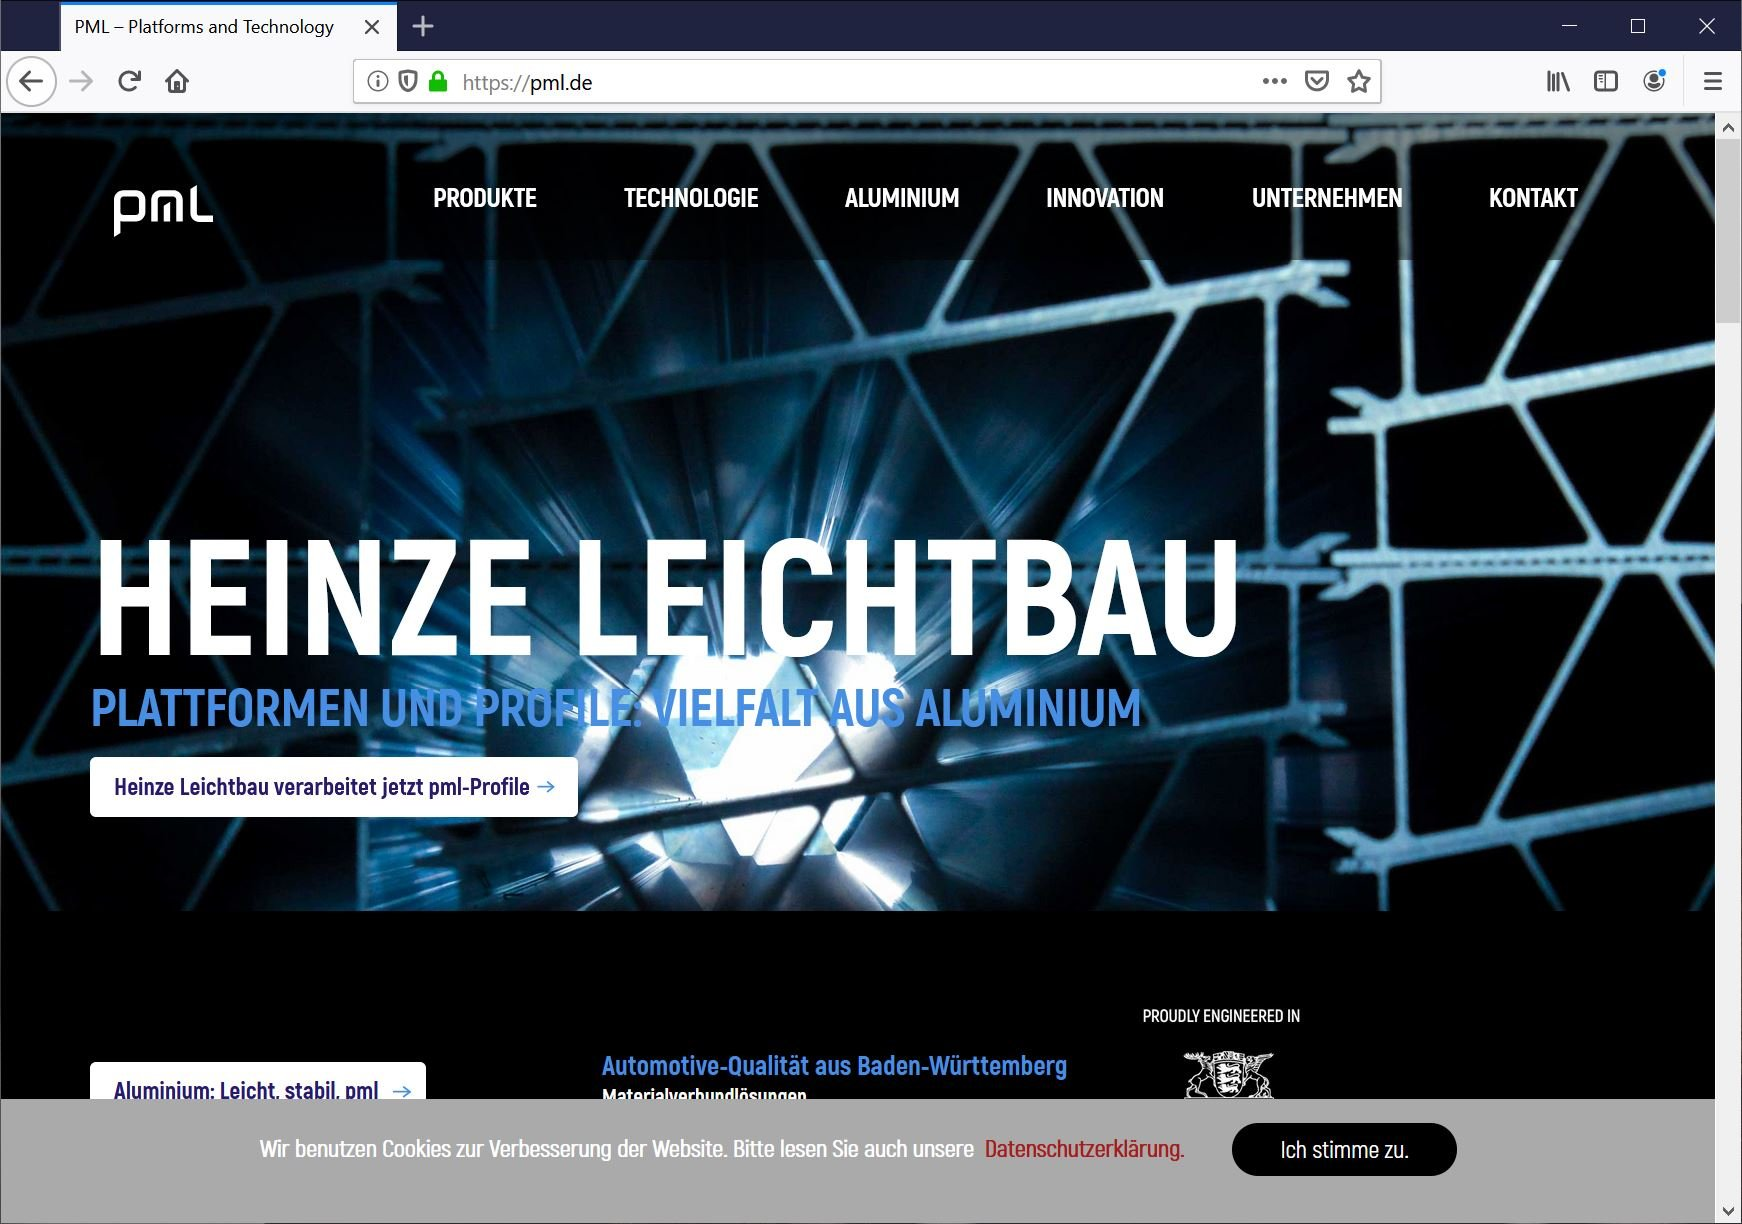 Bielefeld: Texter textet B2B-Website Automotive